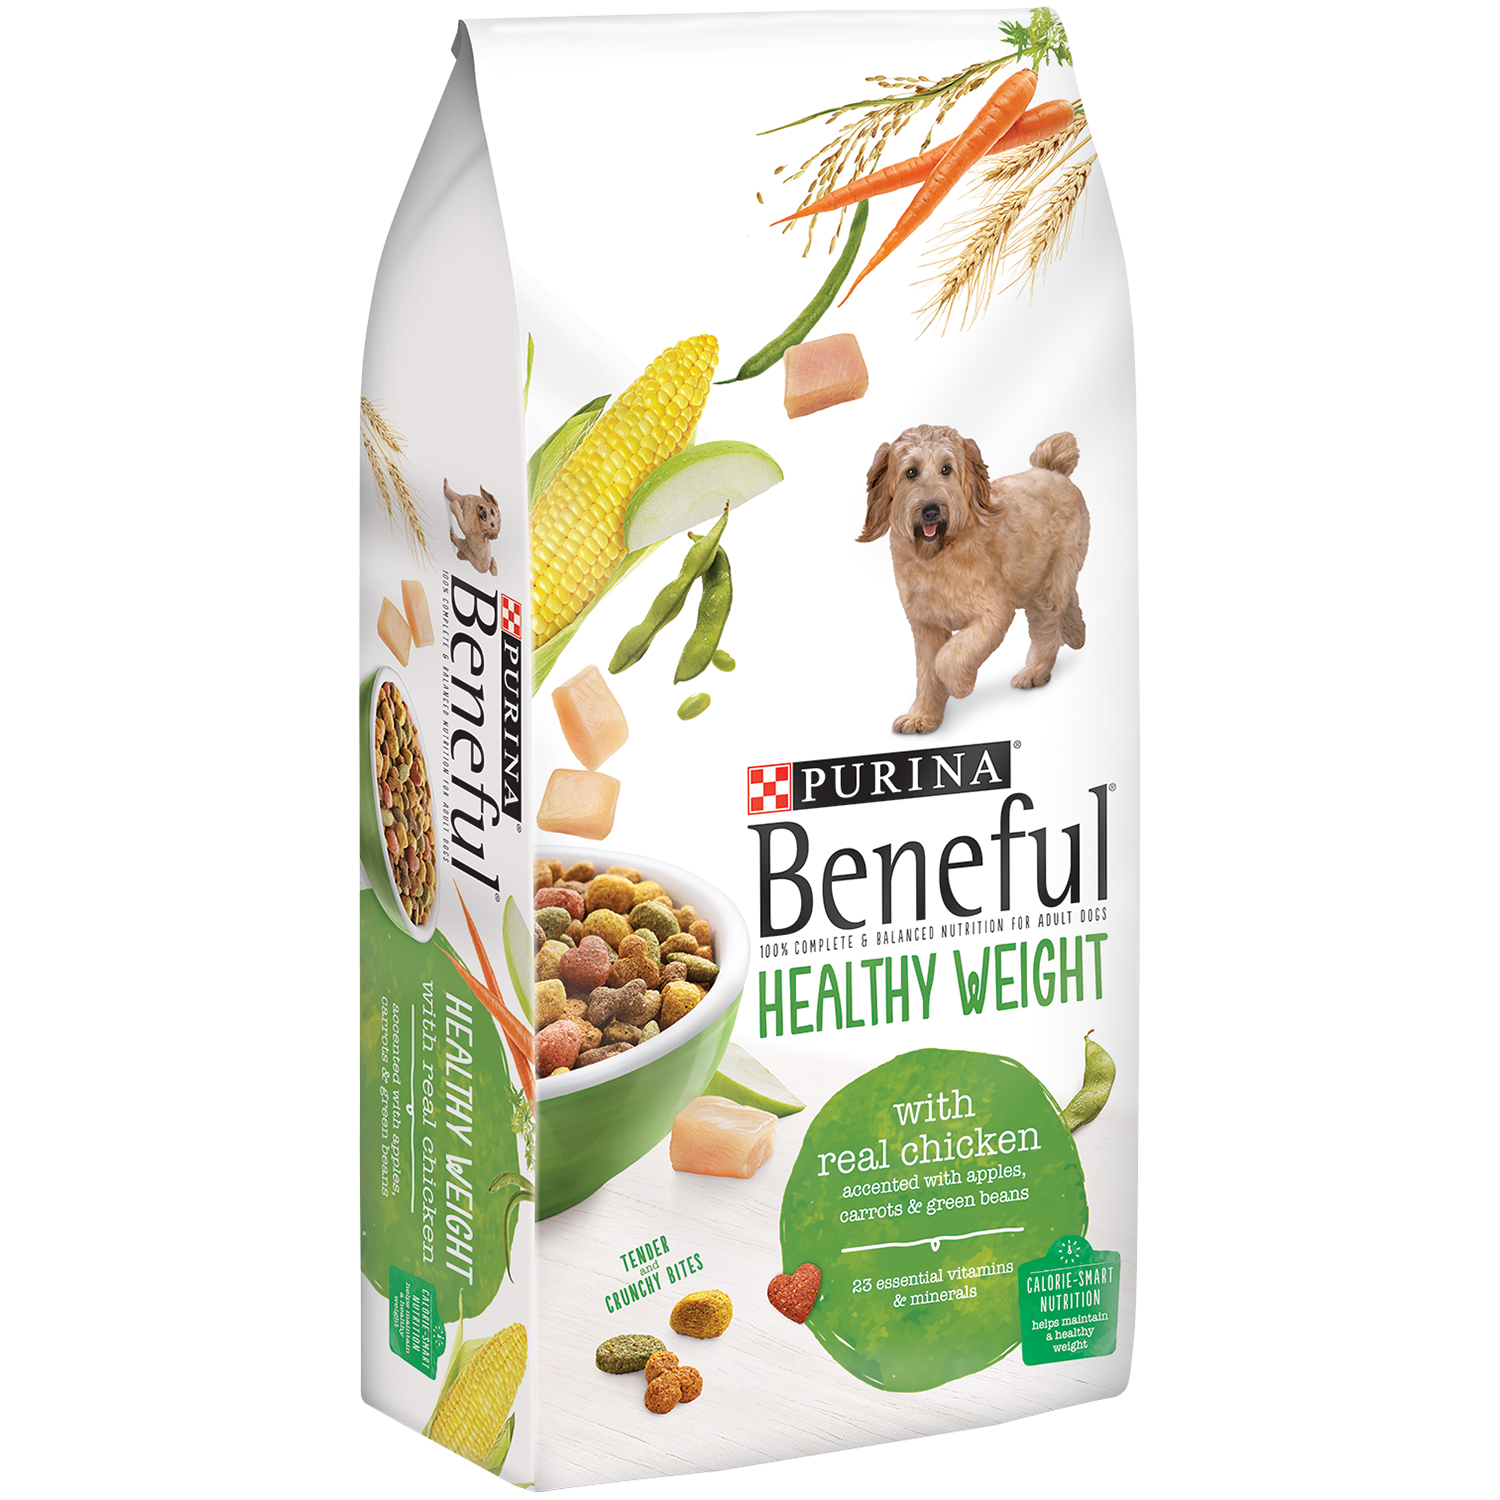 Purina Beneful Healthy Weight With Real Chicken Dog Food 31.1 lb. Bag